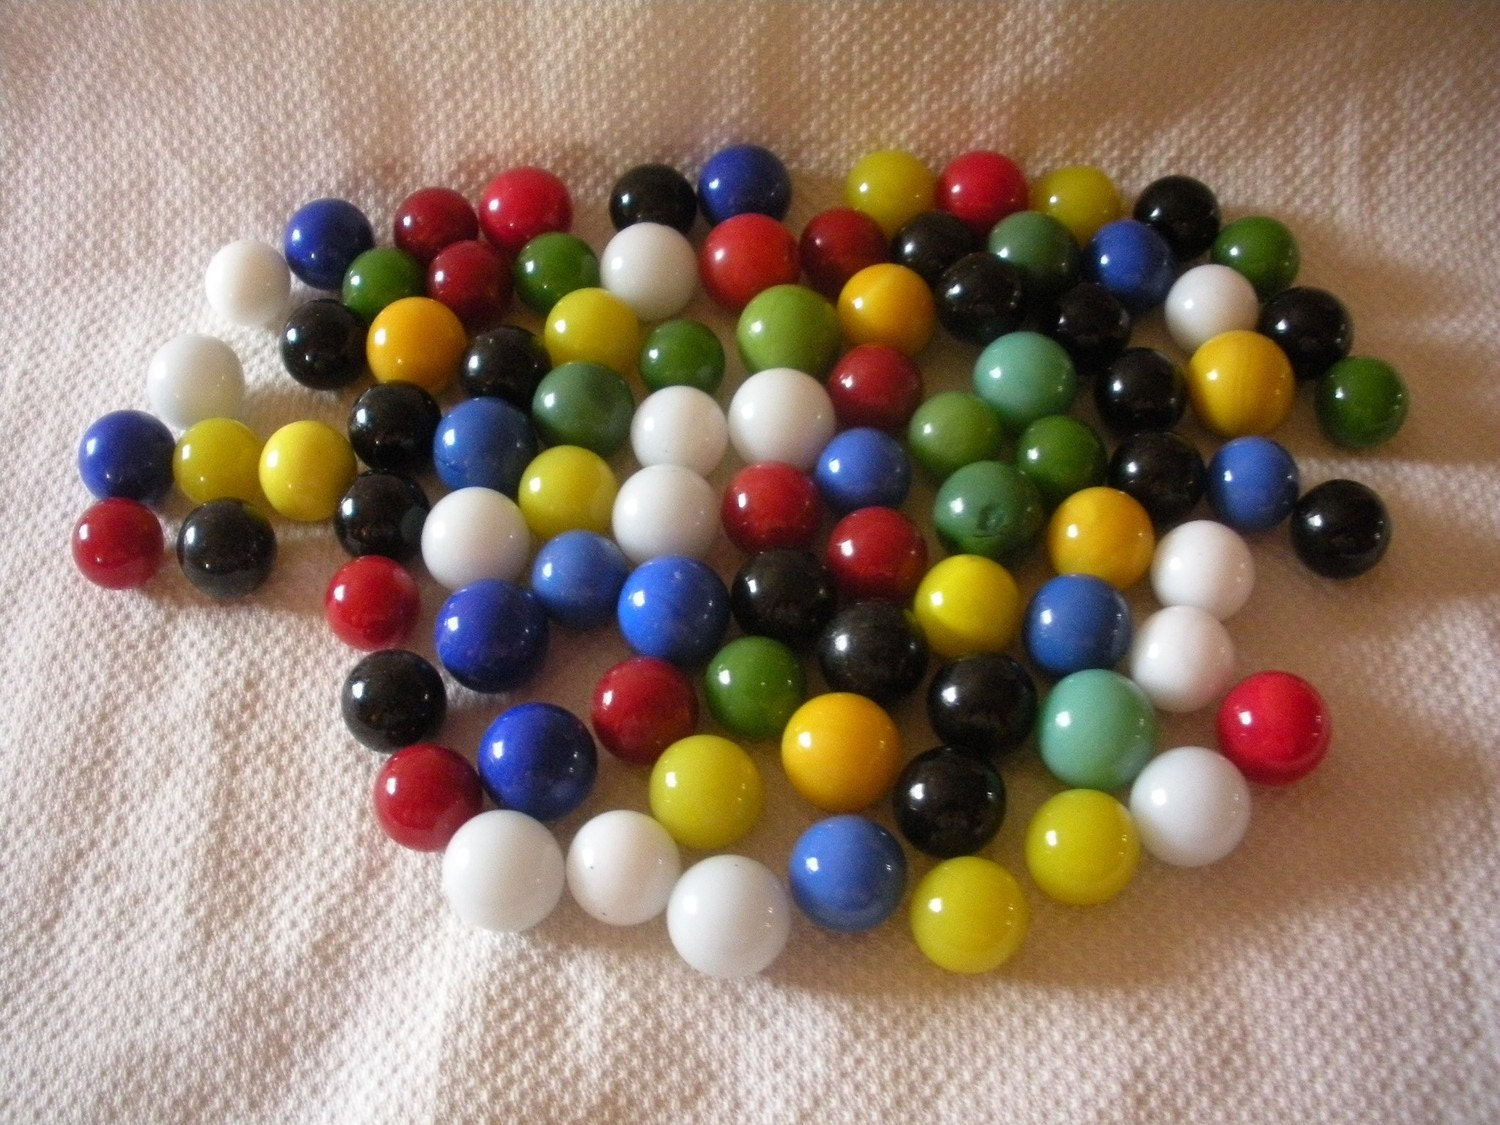 Solid Color Marbles : Solid color marbles